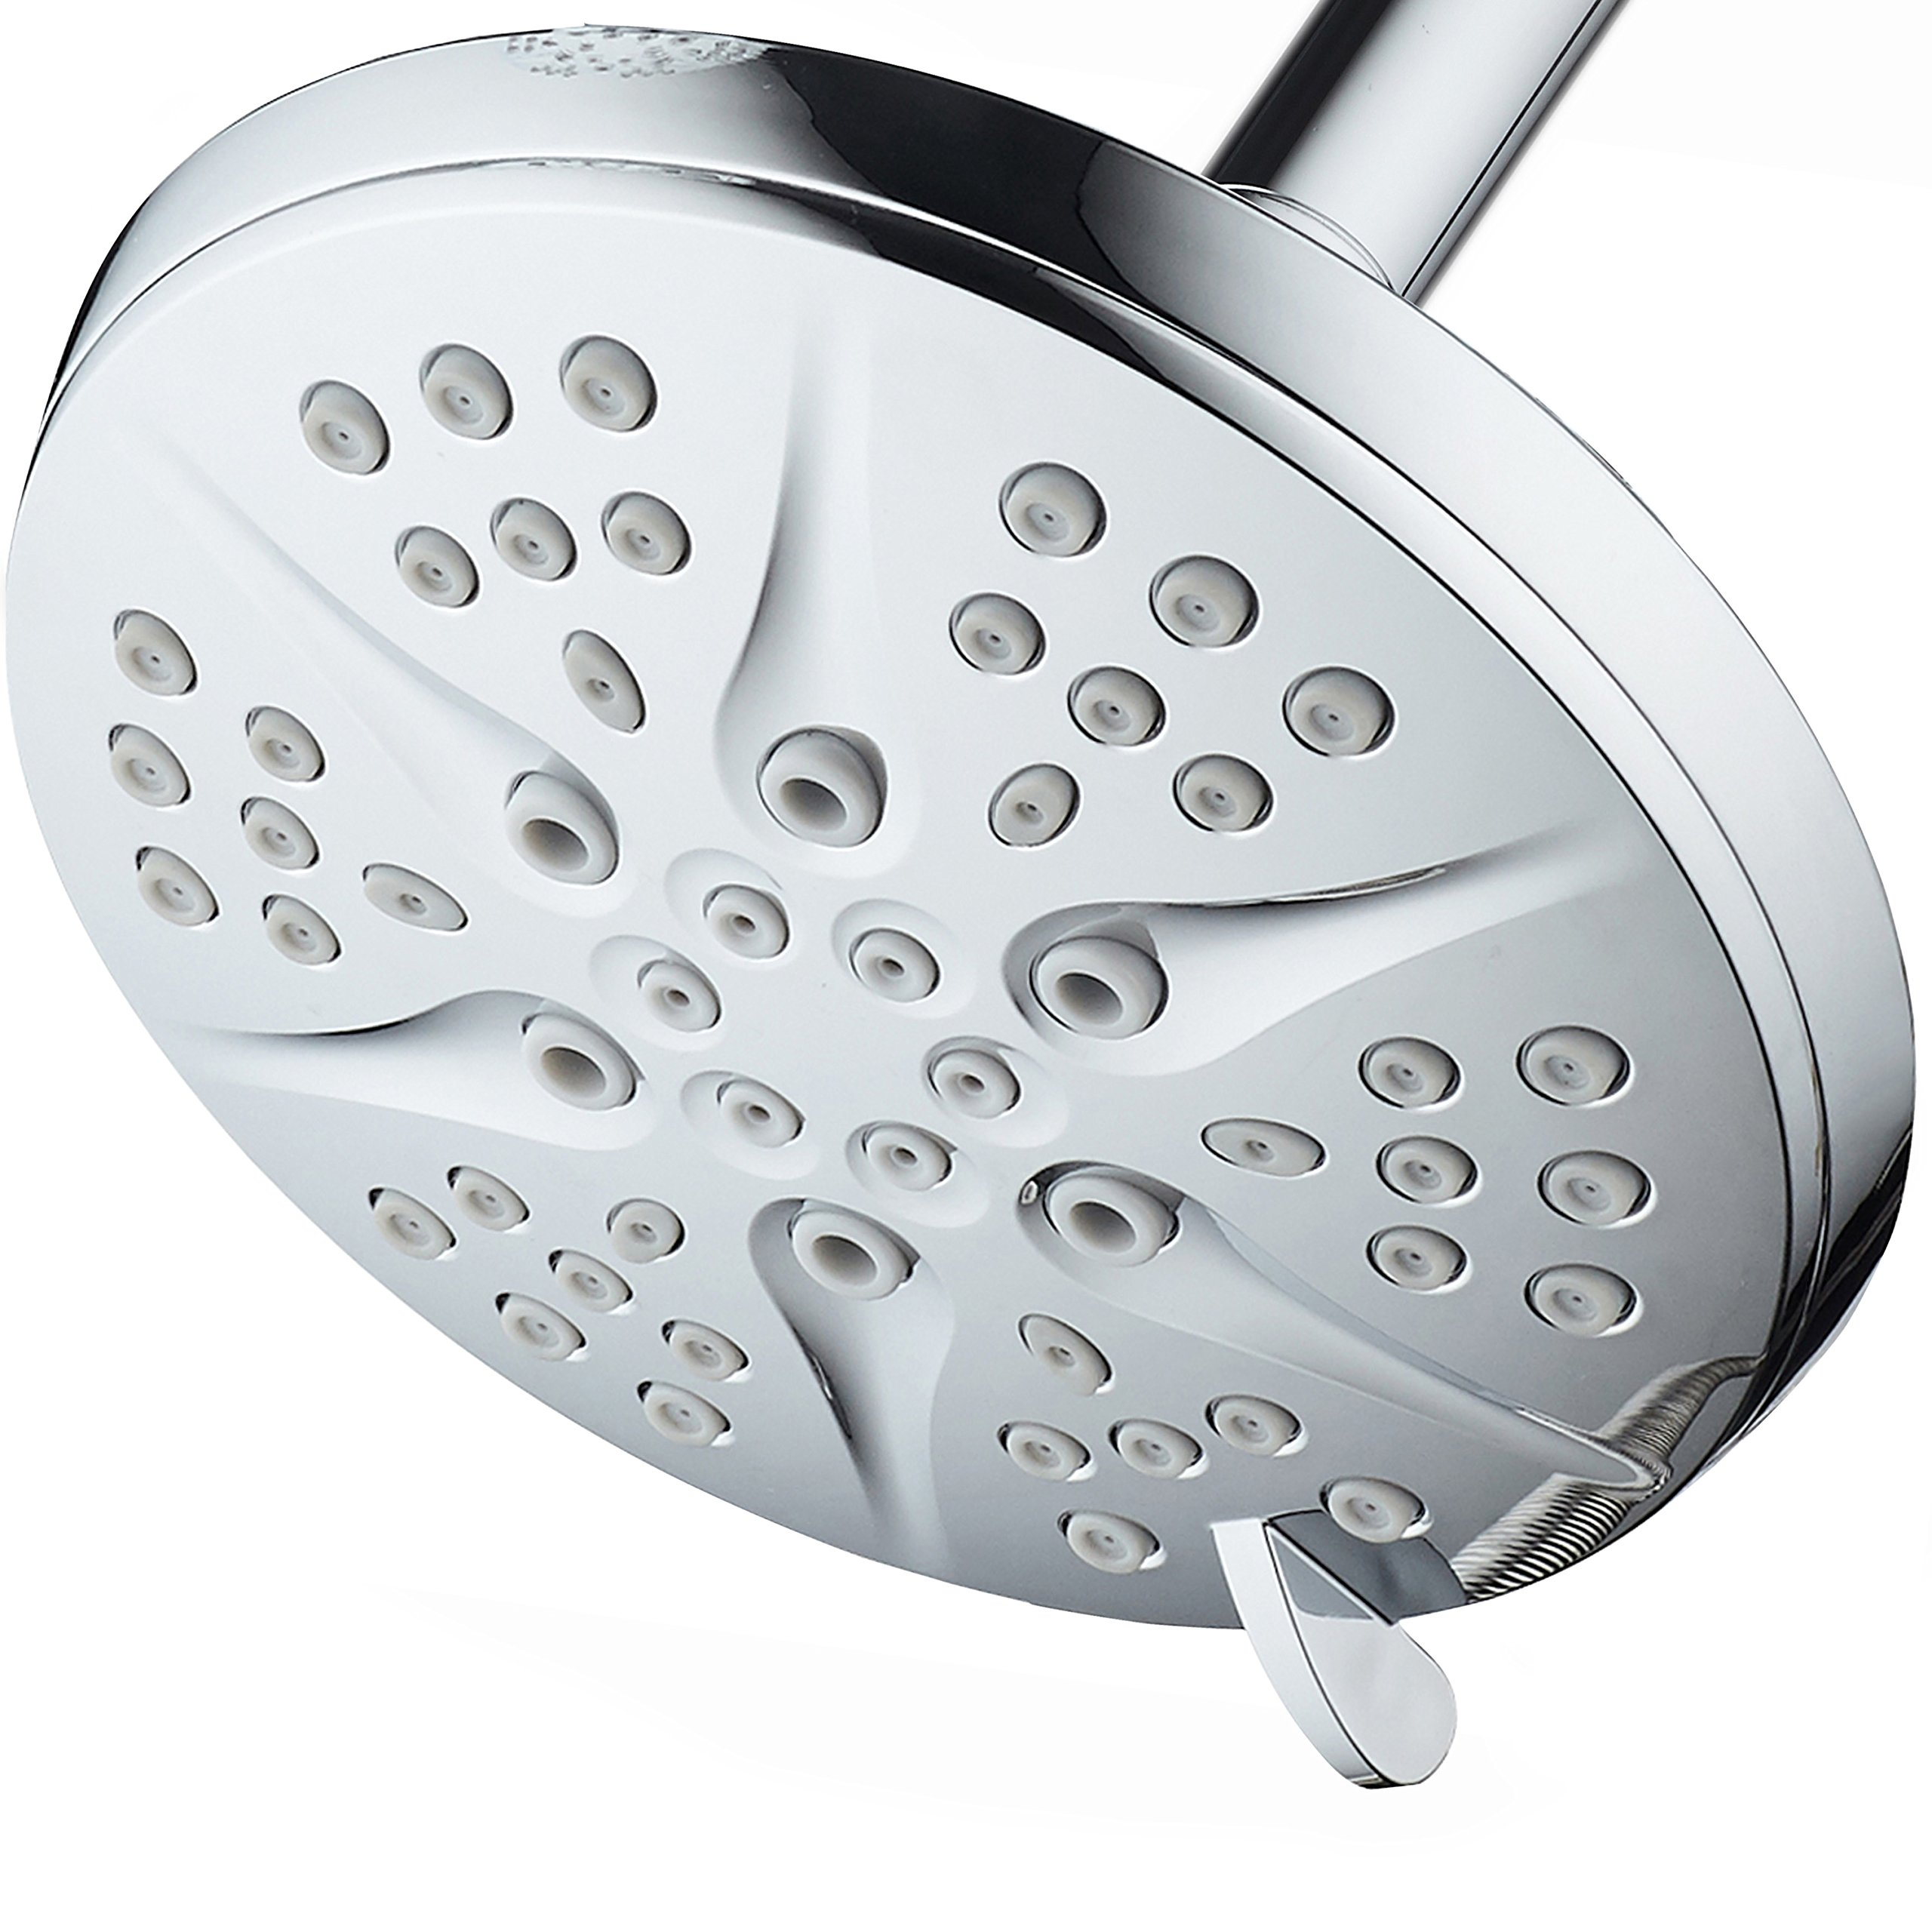 HotelSpa NOTILUS High-Pressure 6-setting 6-inch Modern Luxury Spa Rainfall Shower Head - Solid Brass Metal Connection Nut, Angle-Adjustable Ball Joint, Anti-Clog Jets, All-Chrome Finish,